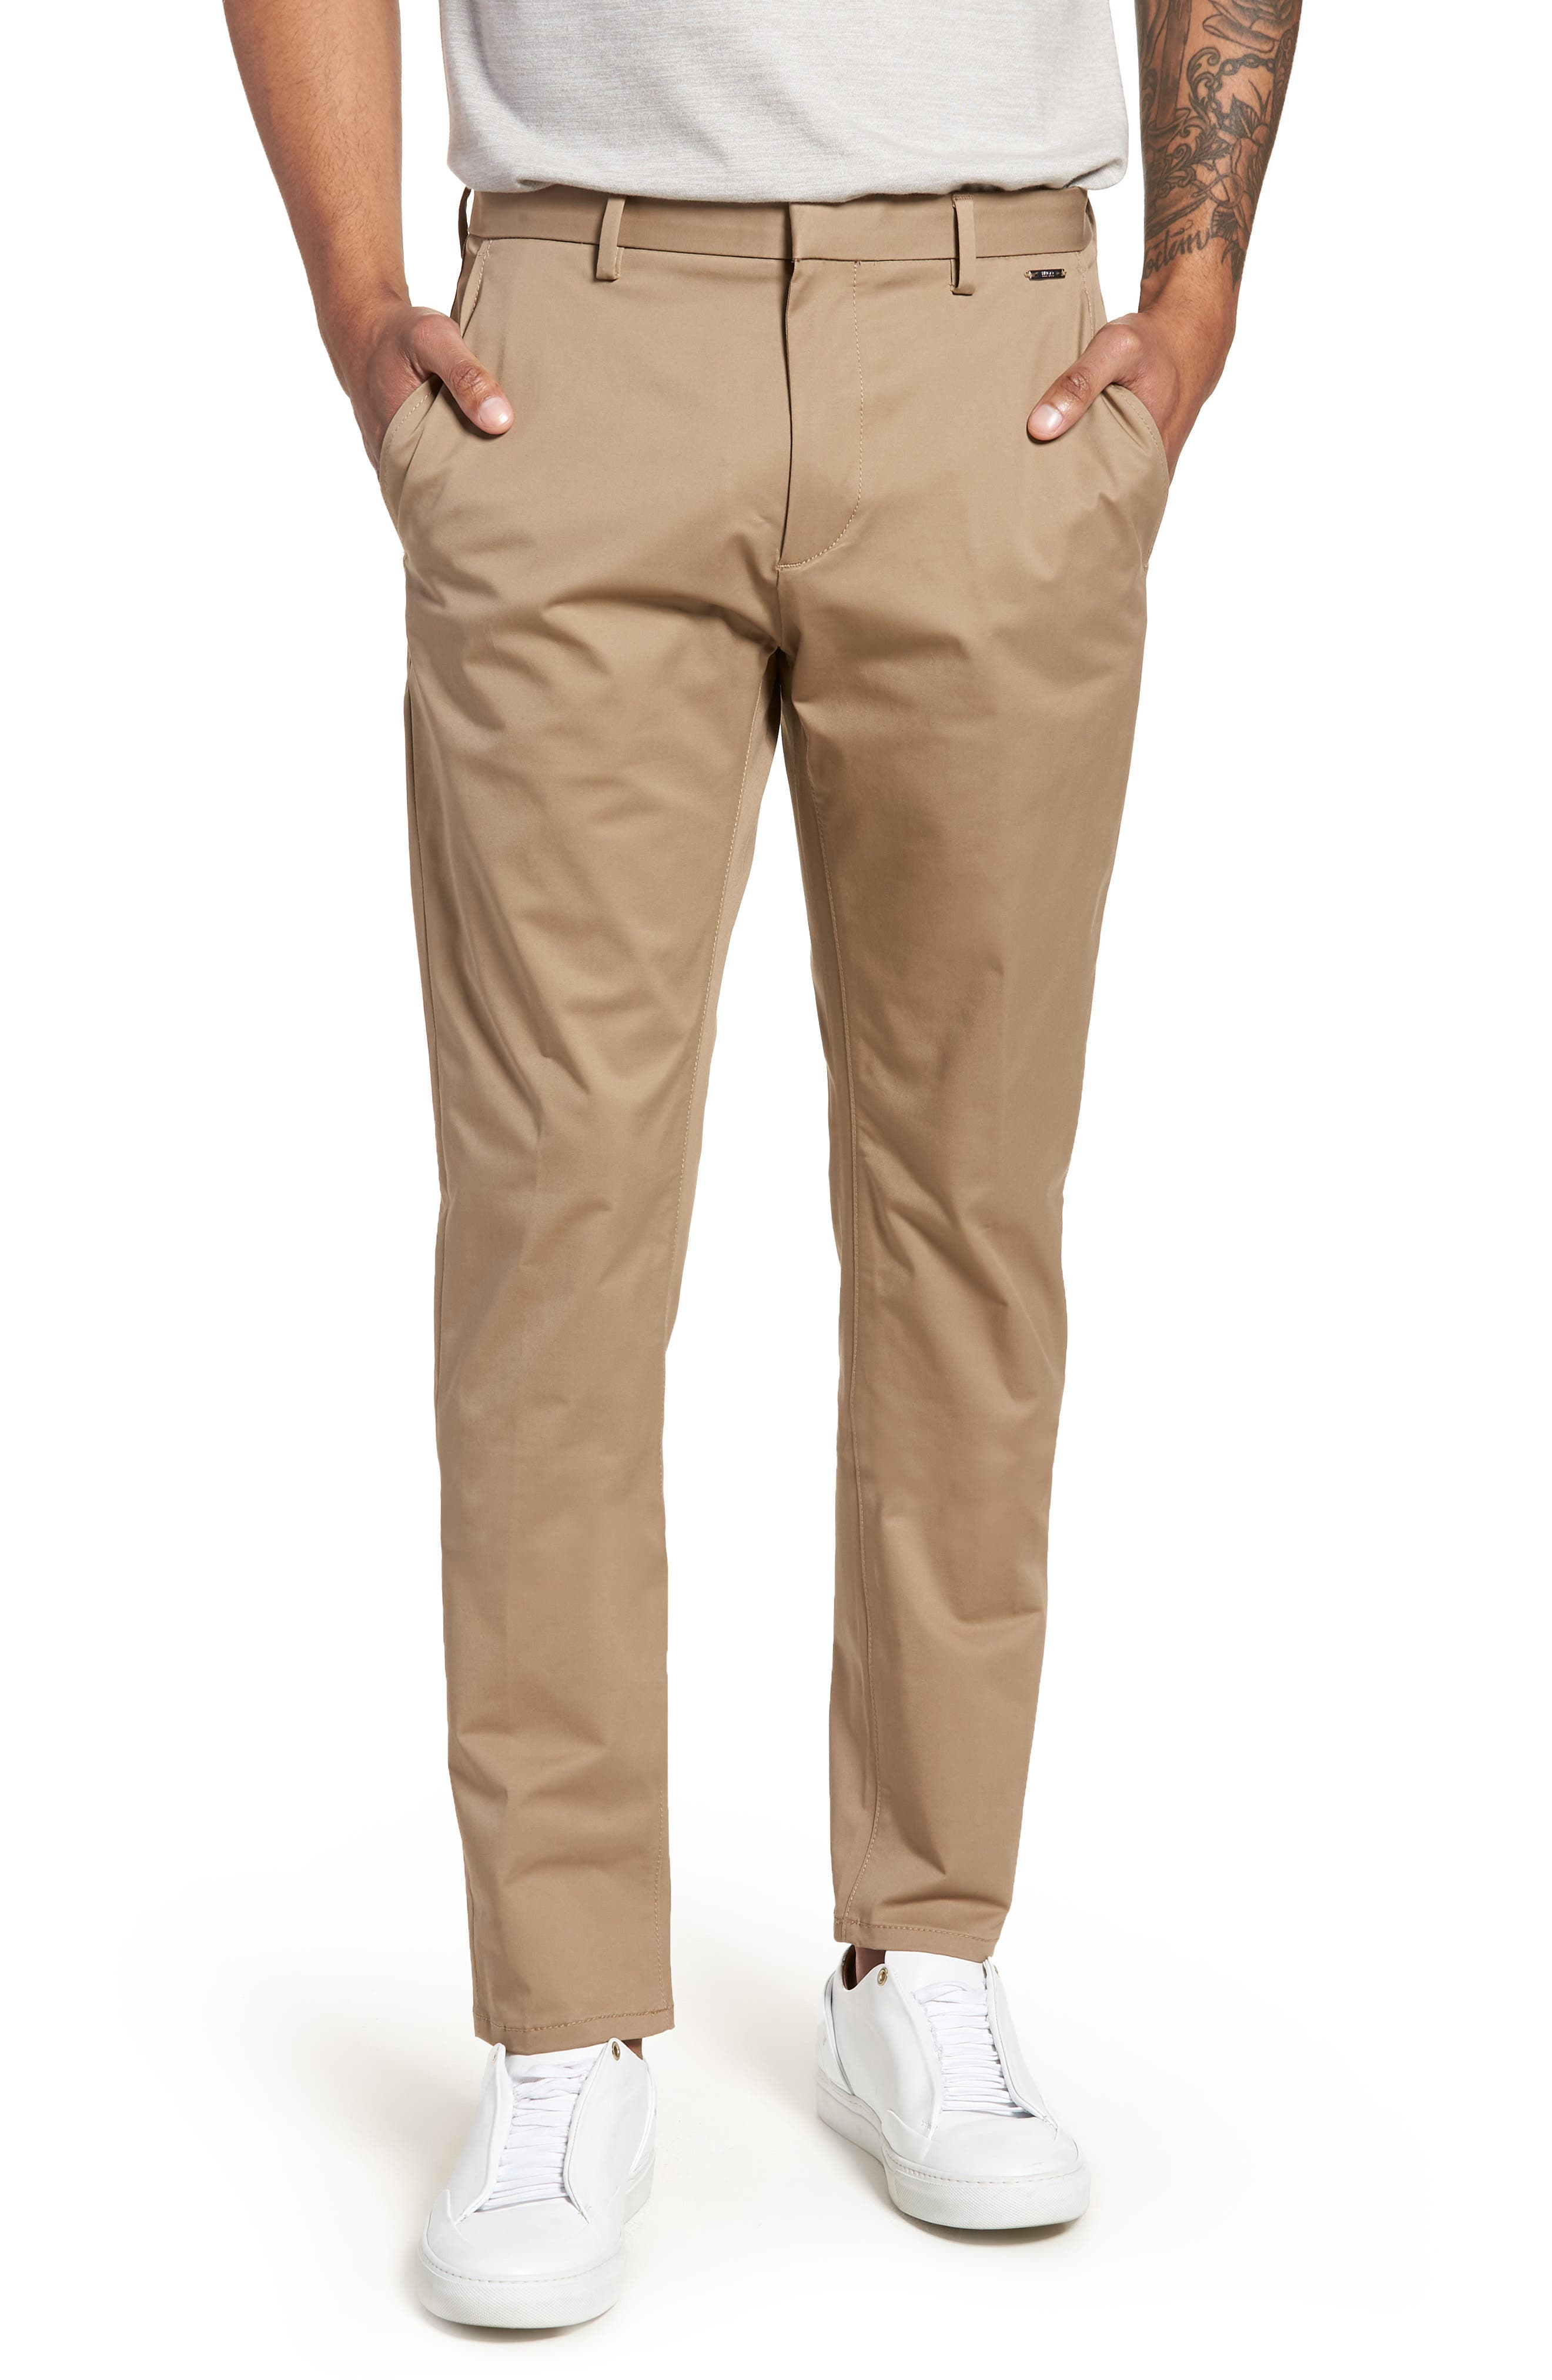 Helgo Flat Front Stretch Pants,                         Main,                         color, 265